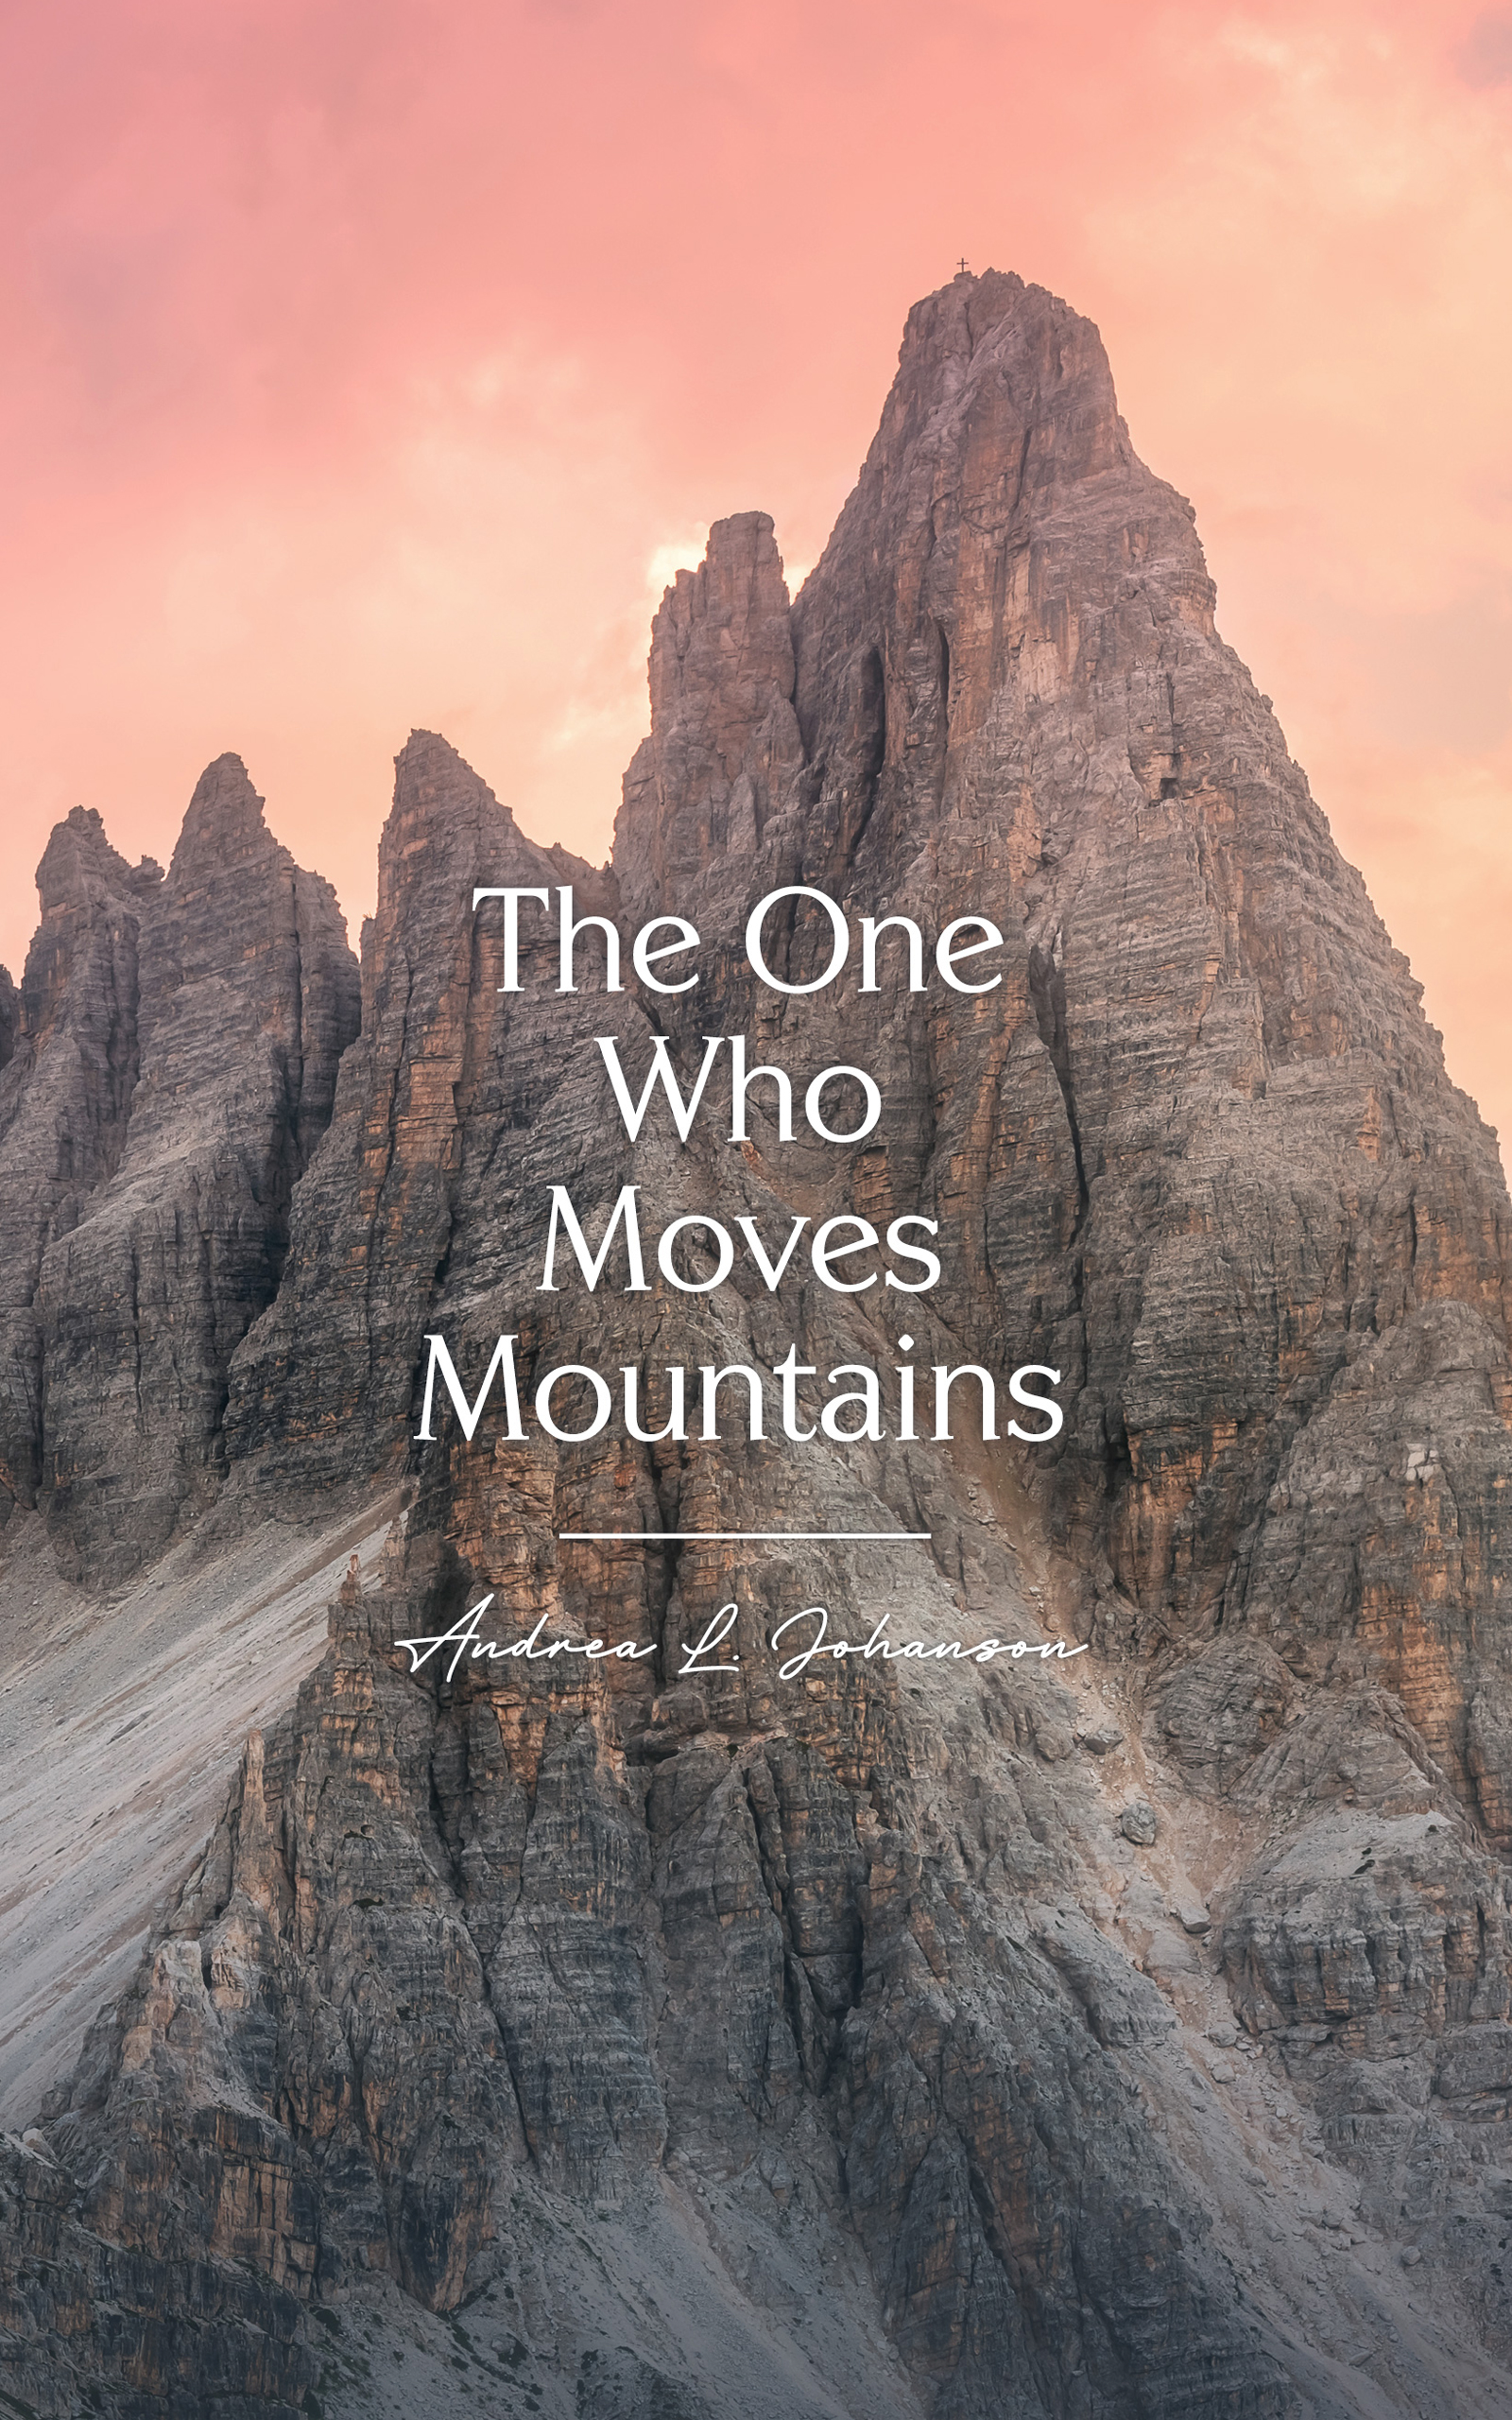 The One Who Moves Mountains